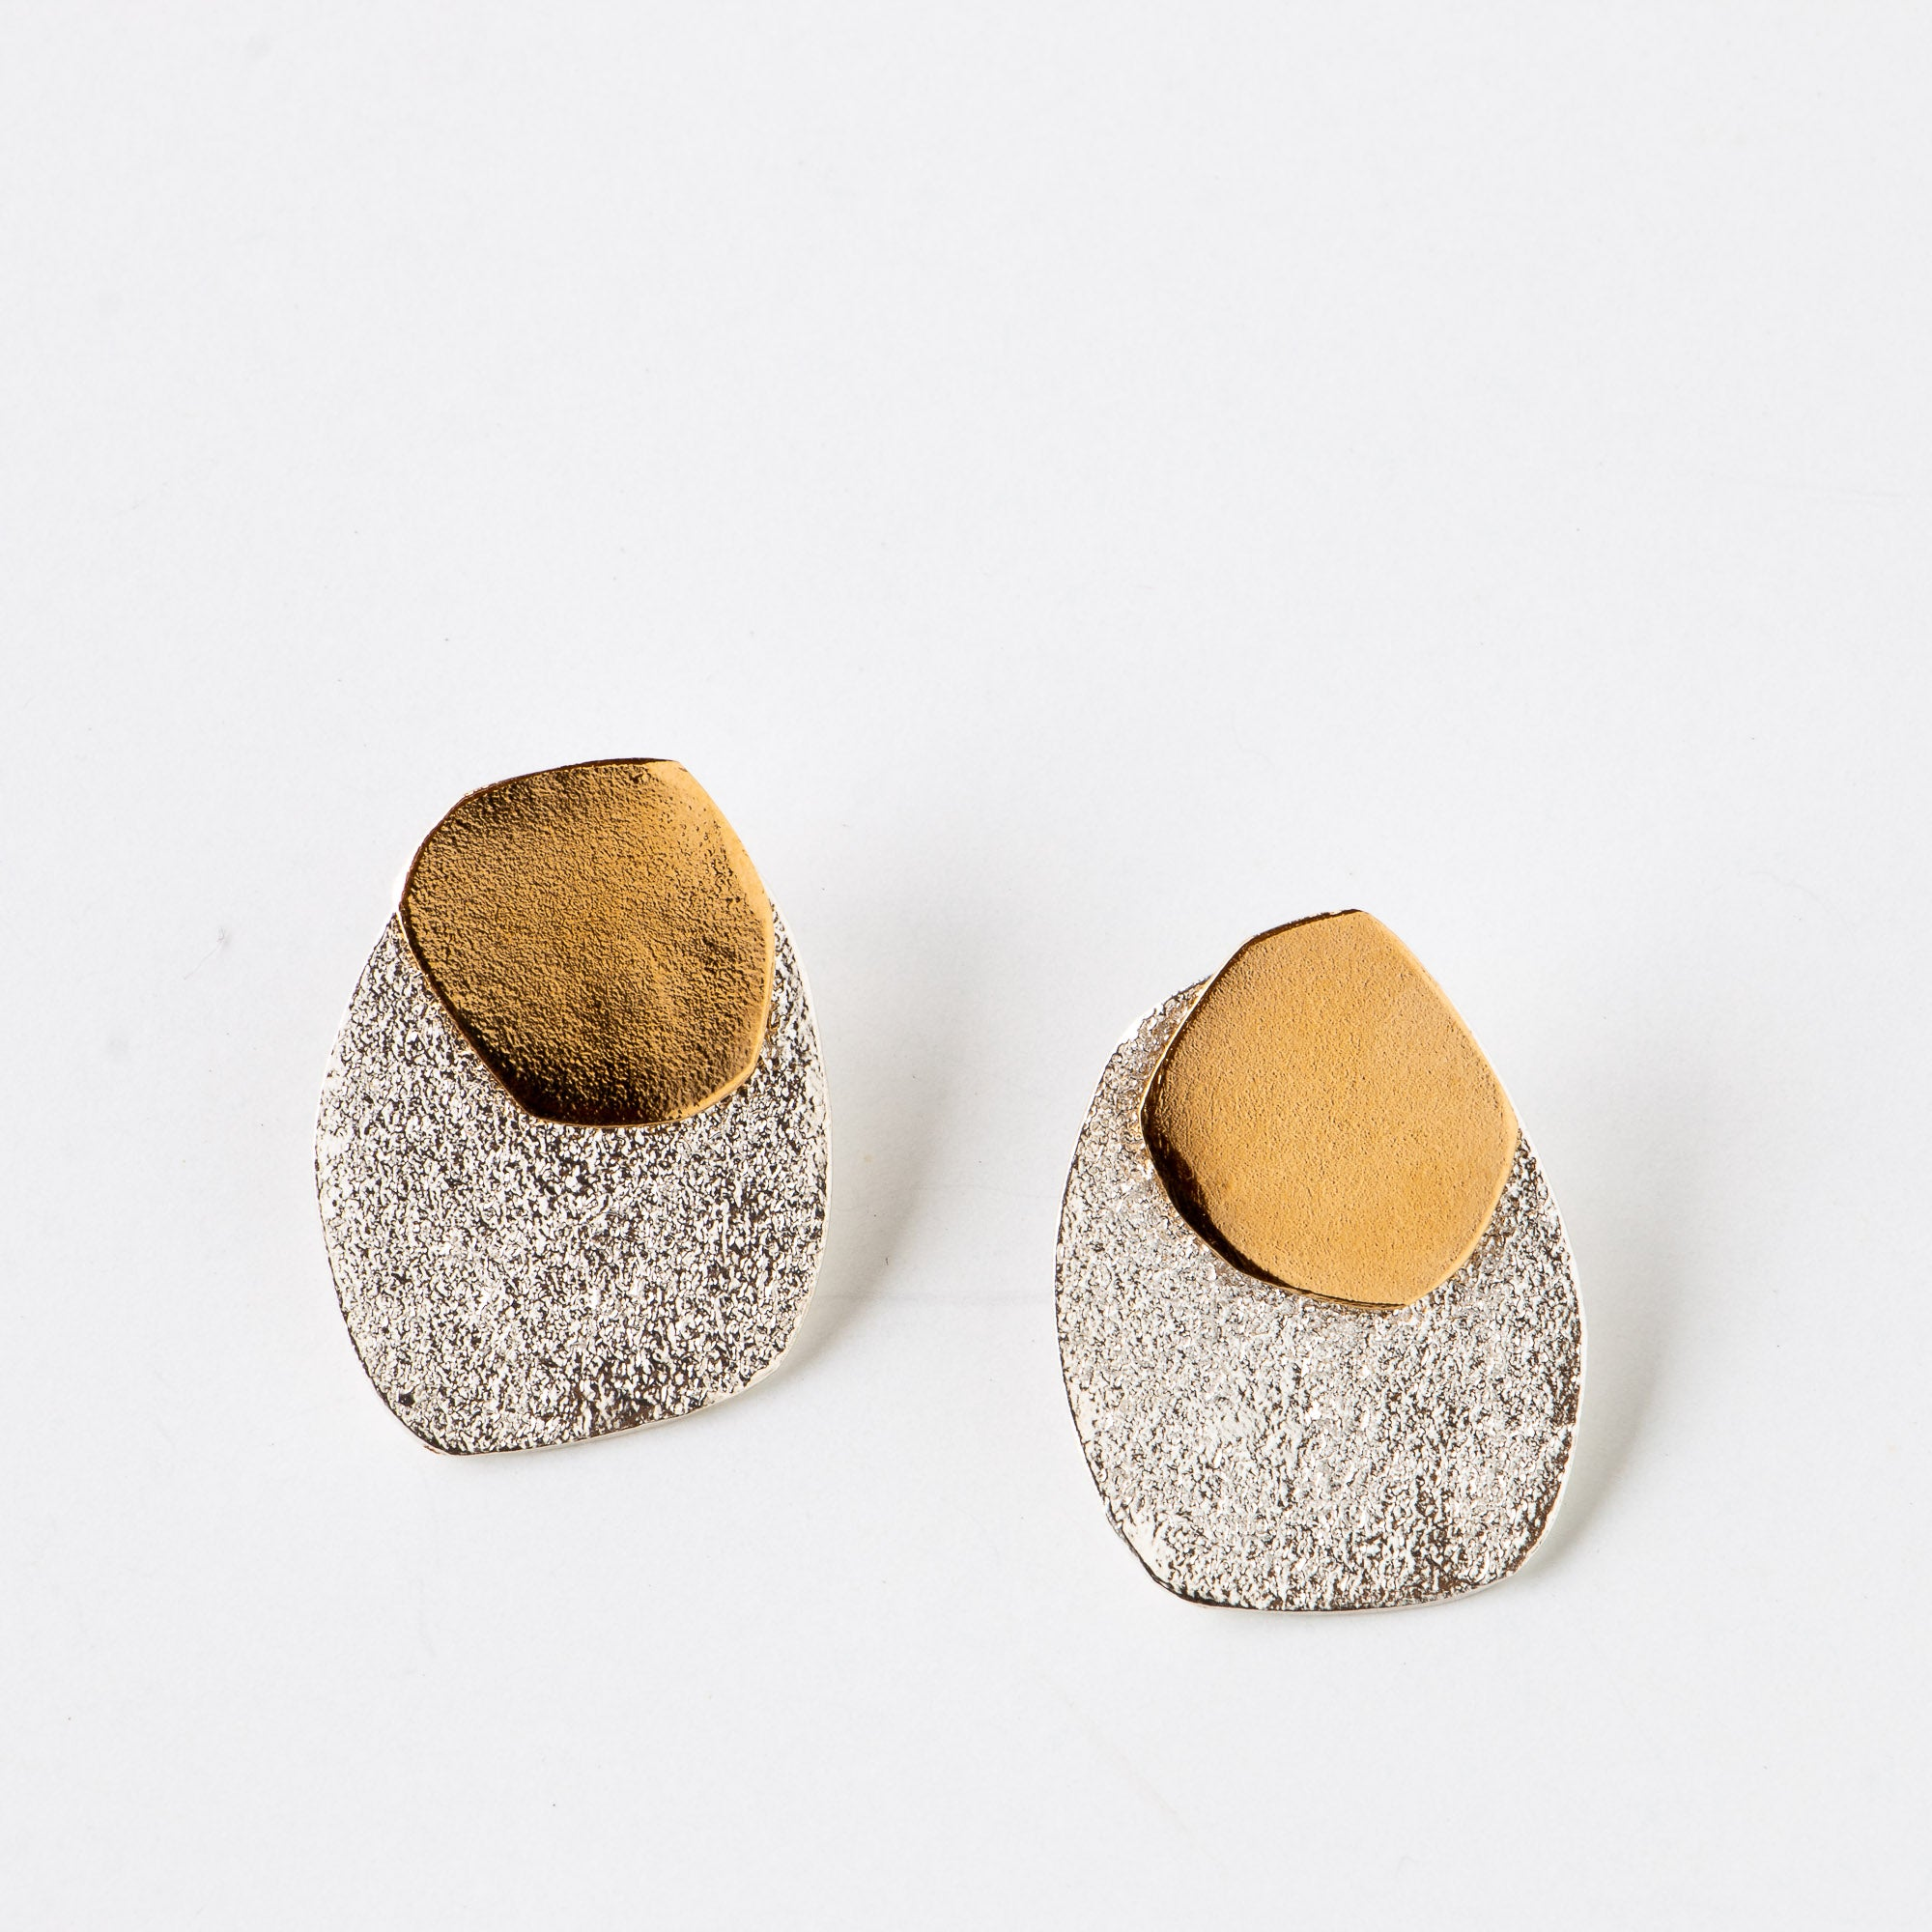 Olas - Ear Jacket / Silver & 14k Gold Plated Earrings Sold by Chic & Basta